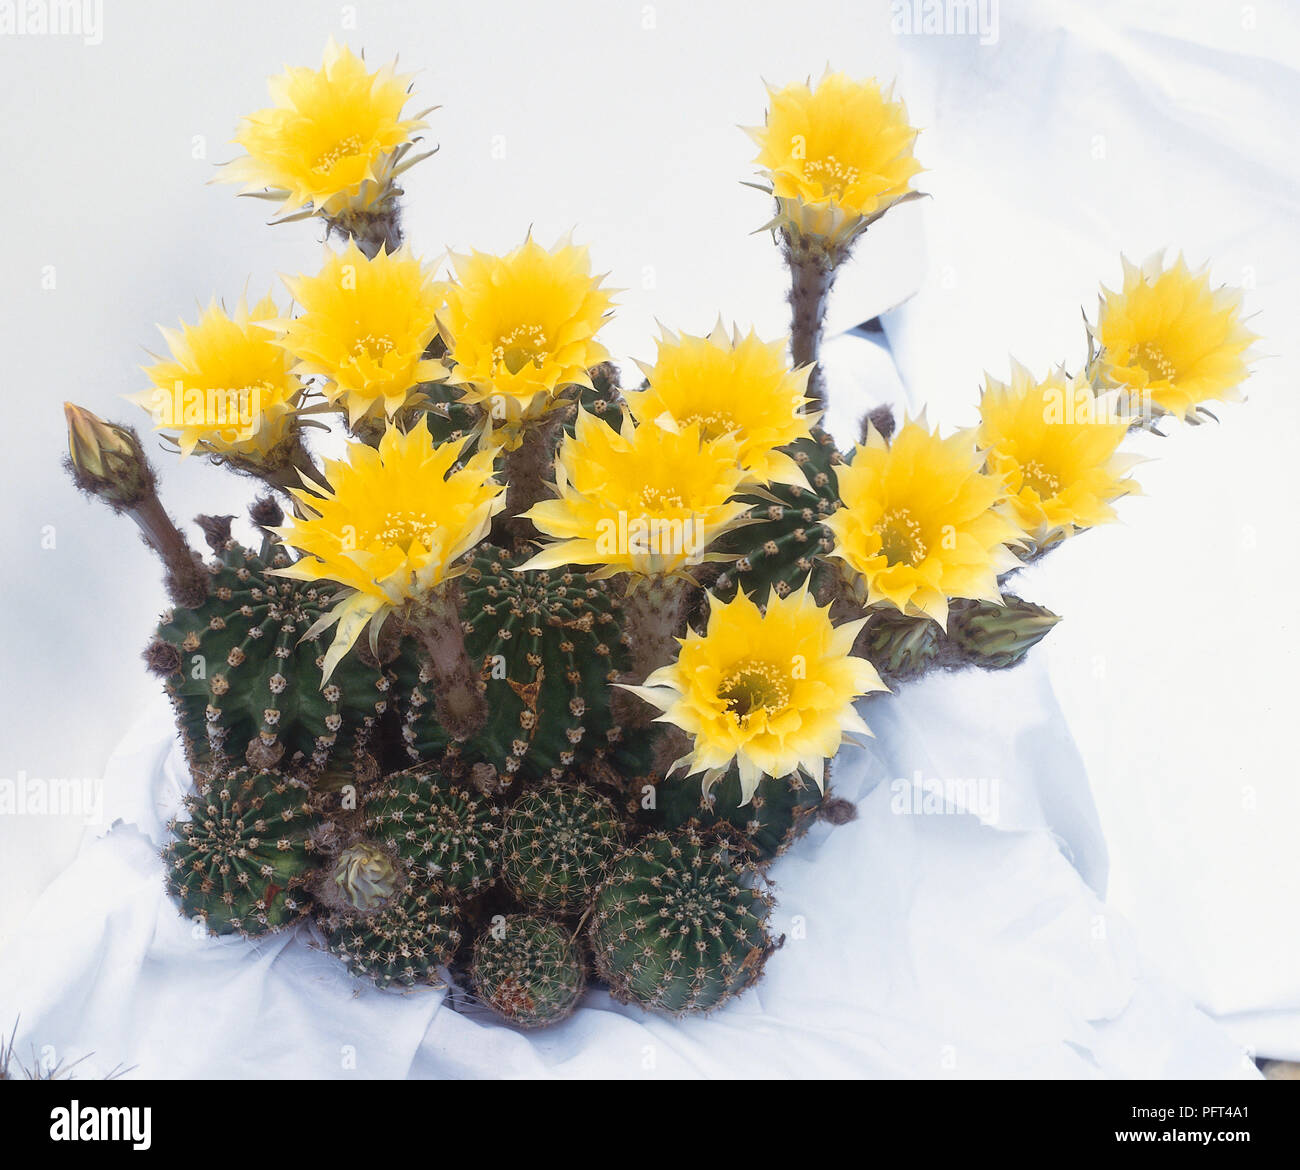 Echinopsis Forty Niner Hybrid Cactus With Yellow Flowers Stock